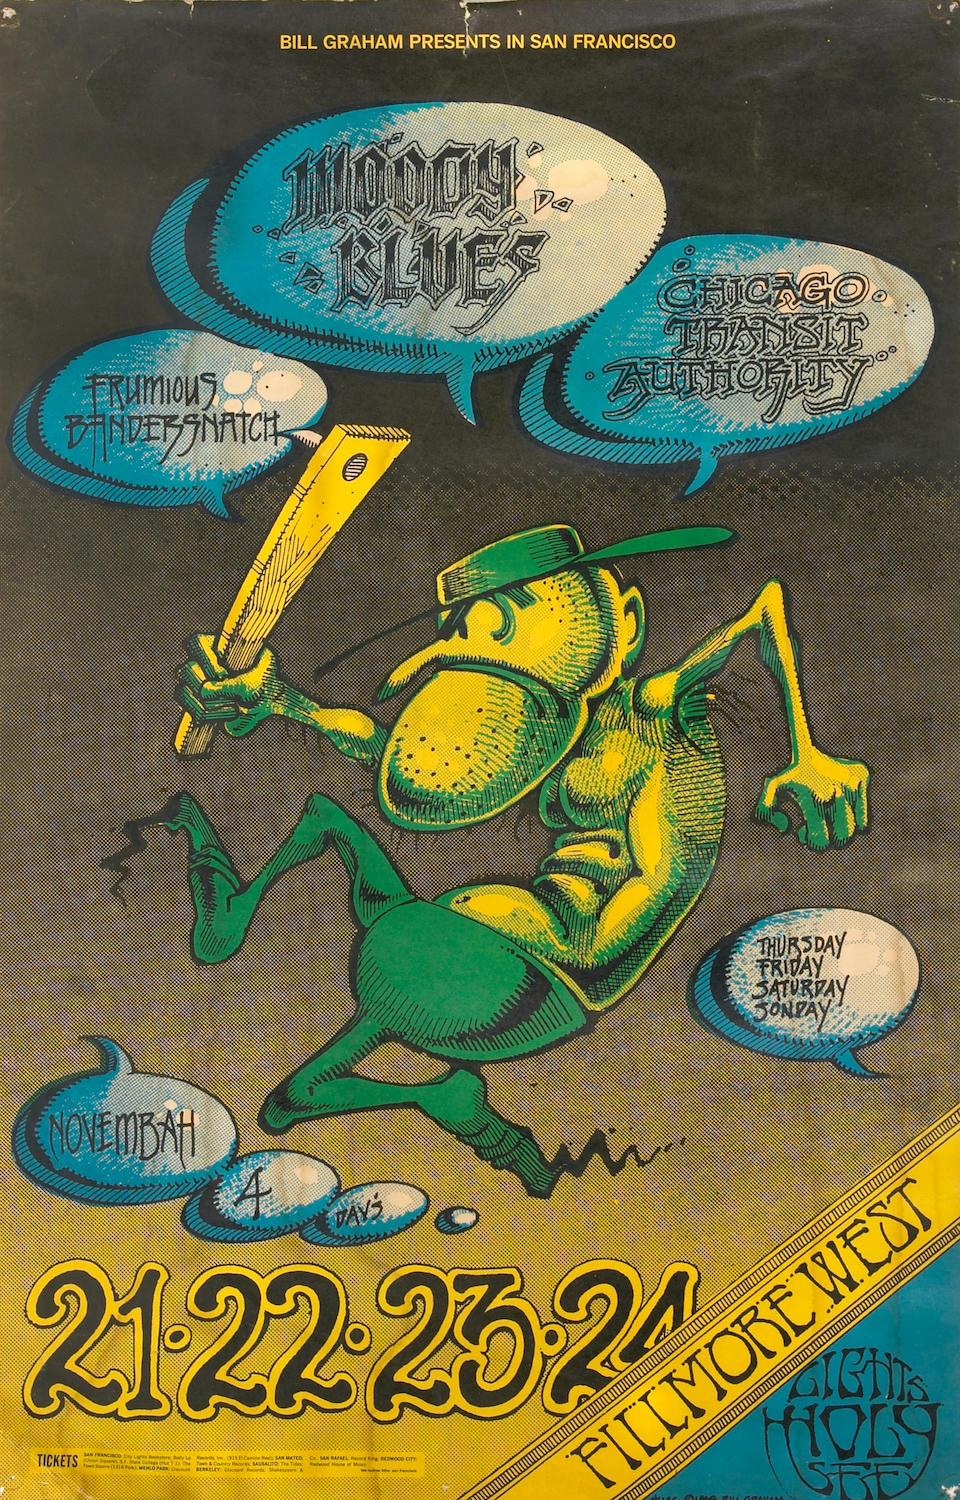 """A Ron """"Pig Pen"""" McKernan group of personally owned posters from when he lived at 710 Ashbury Street, mid-1960s"""